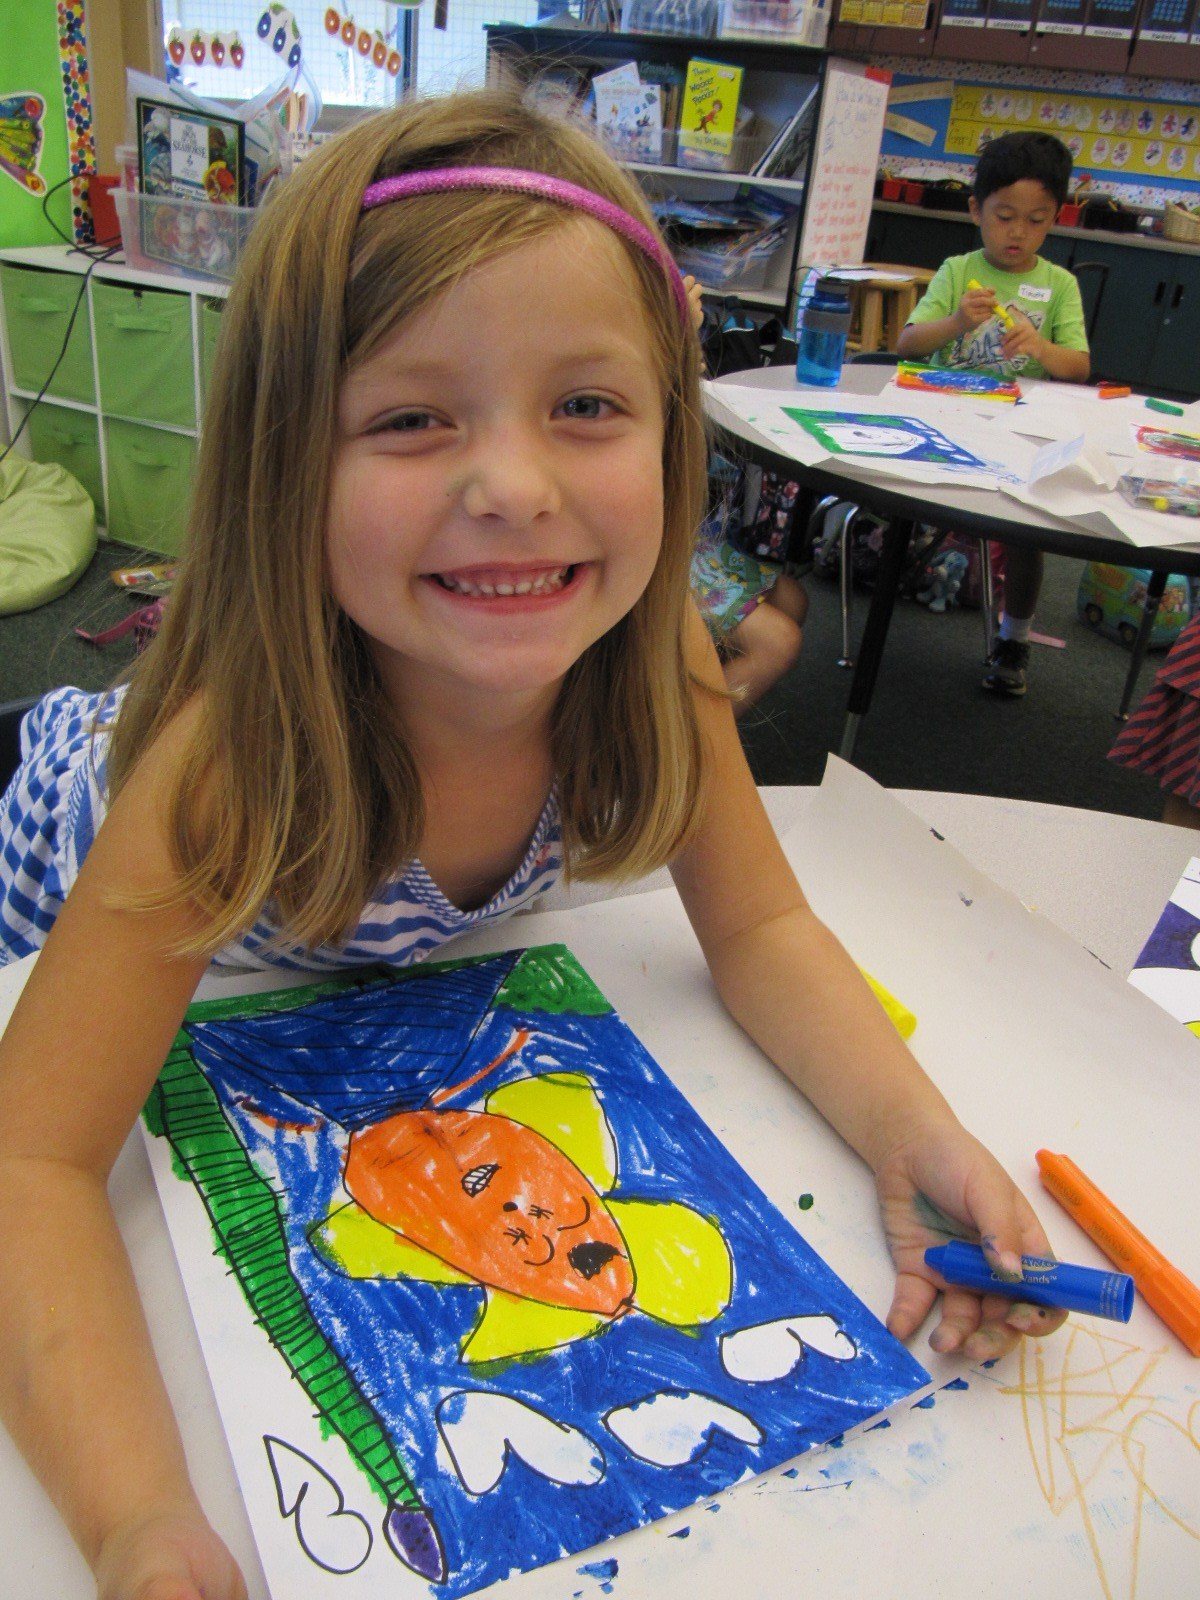 A girl creating a self-portrait with makers.